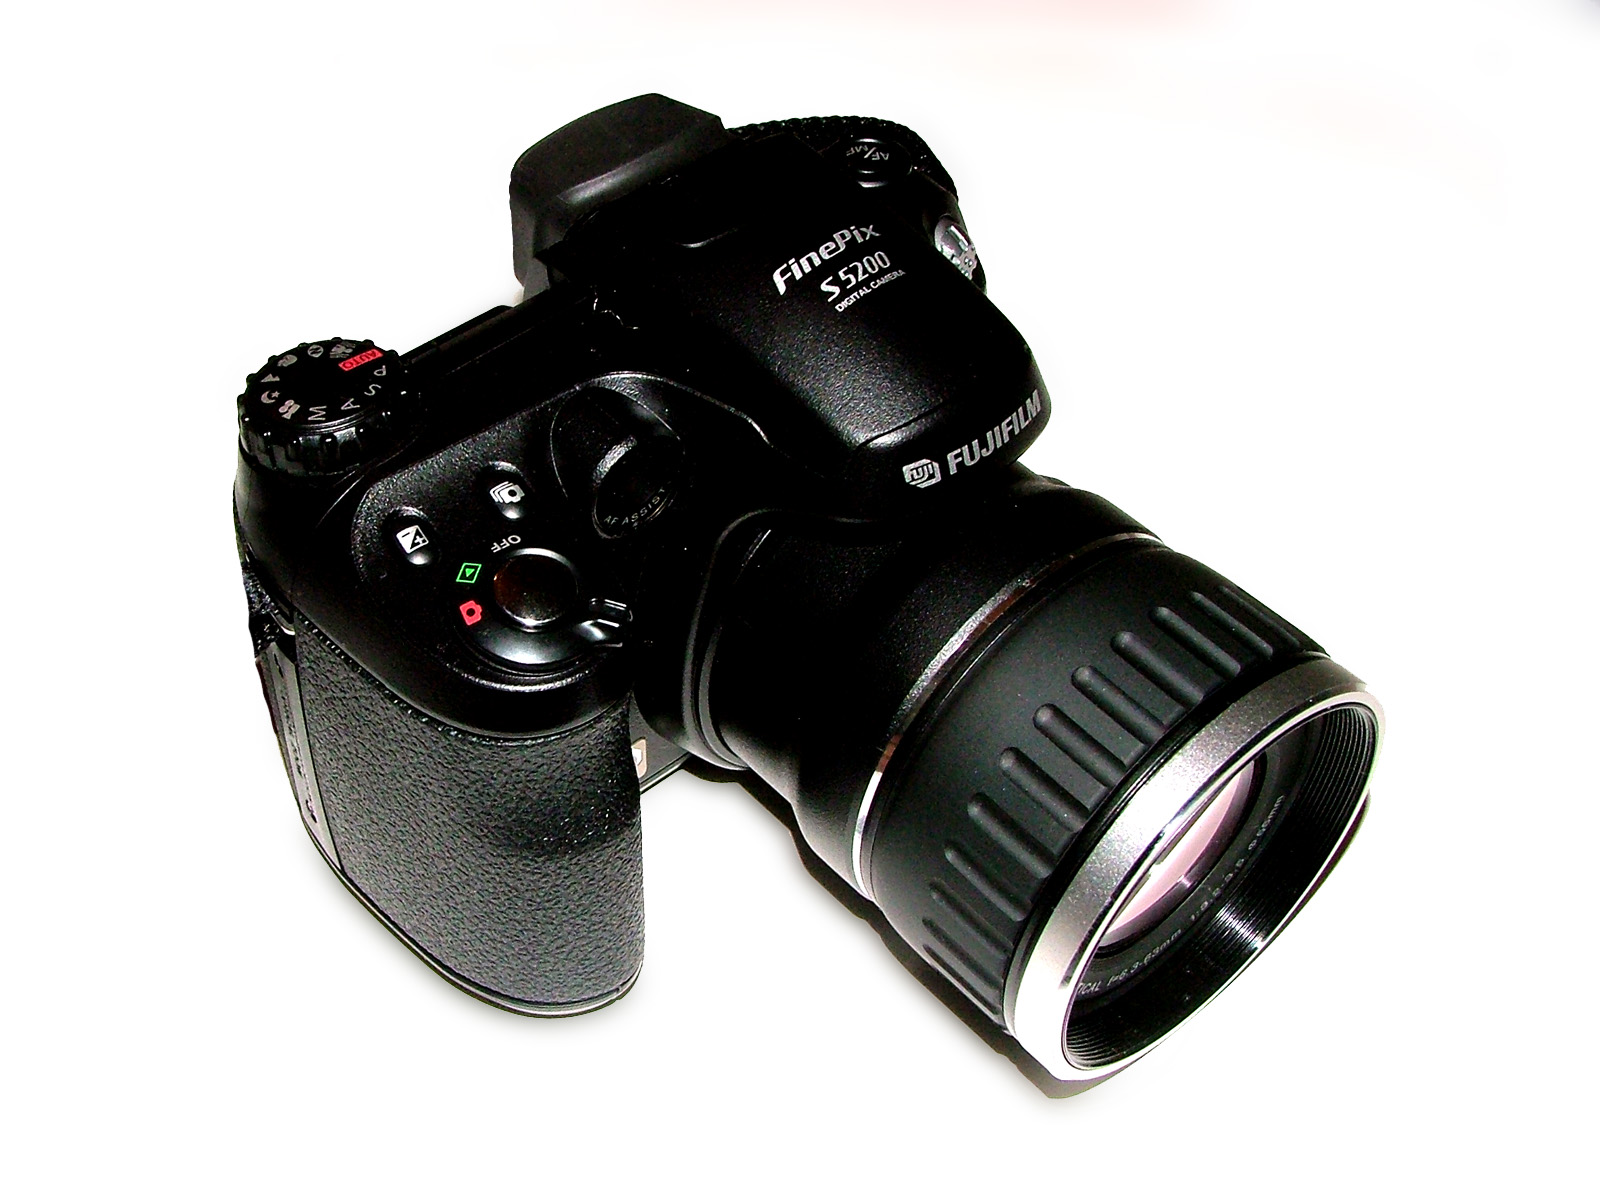 Fuji Finepix S5200 S5600 Manual